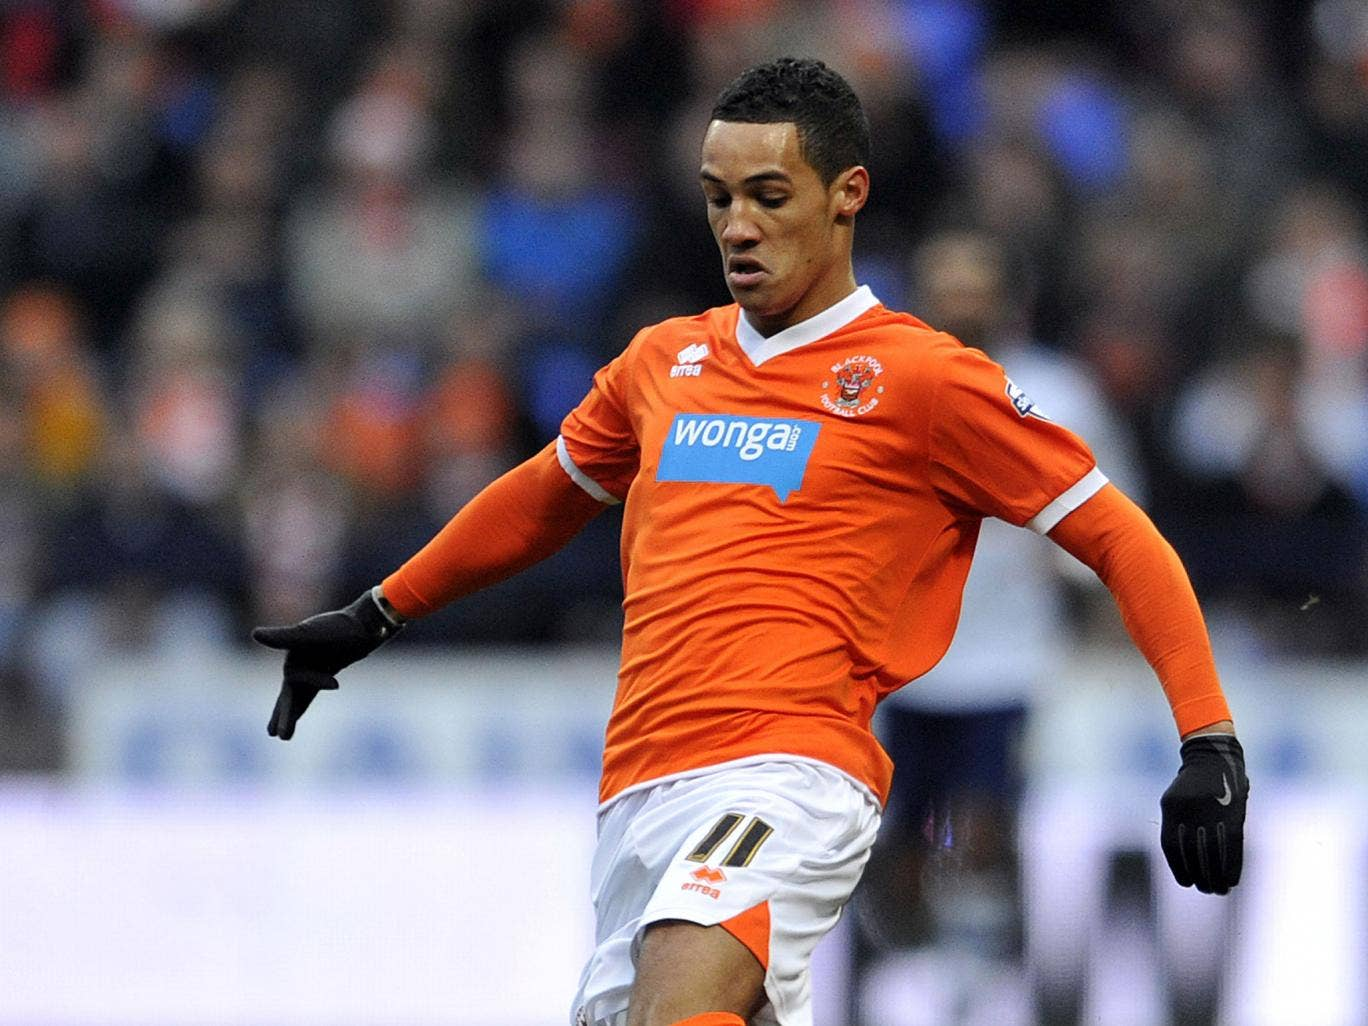 Blackpool winger Tom Ince is due to have talks with Swansea City about a possible loan move